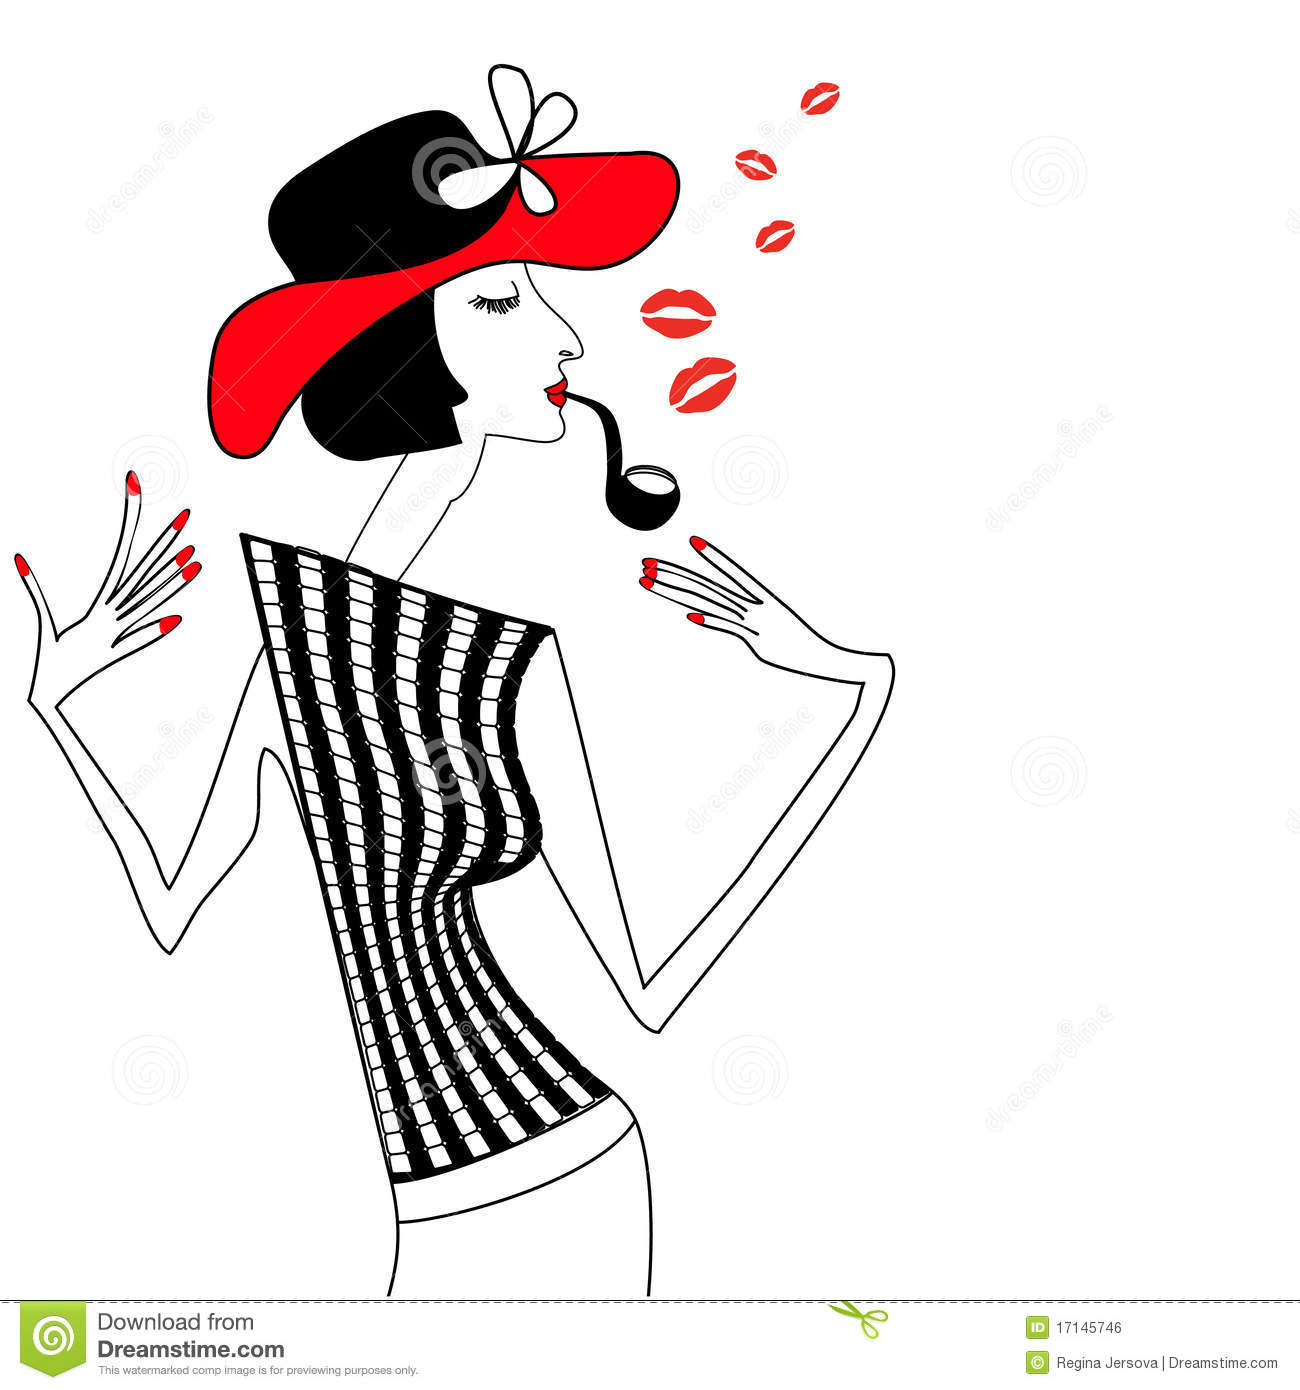 Template Greeting Card Royalty Free Stock Image: Smoking Woman Royalty Free Stock Image